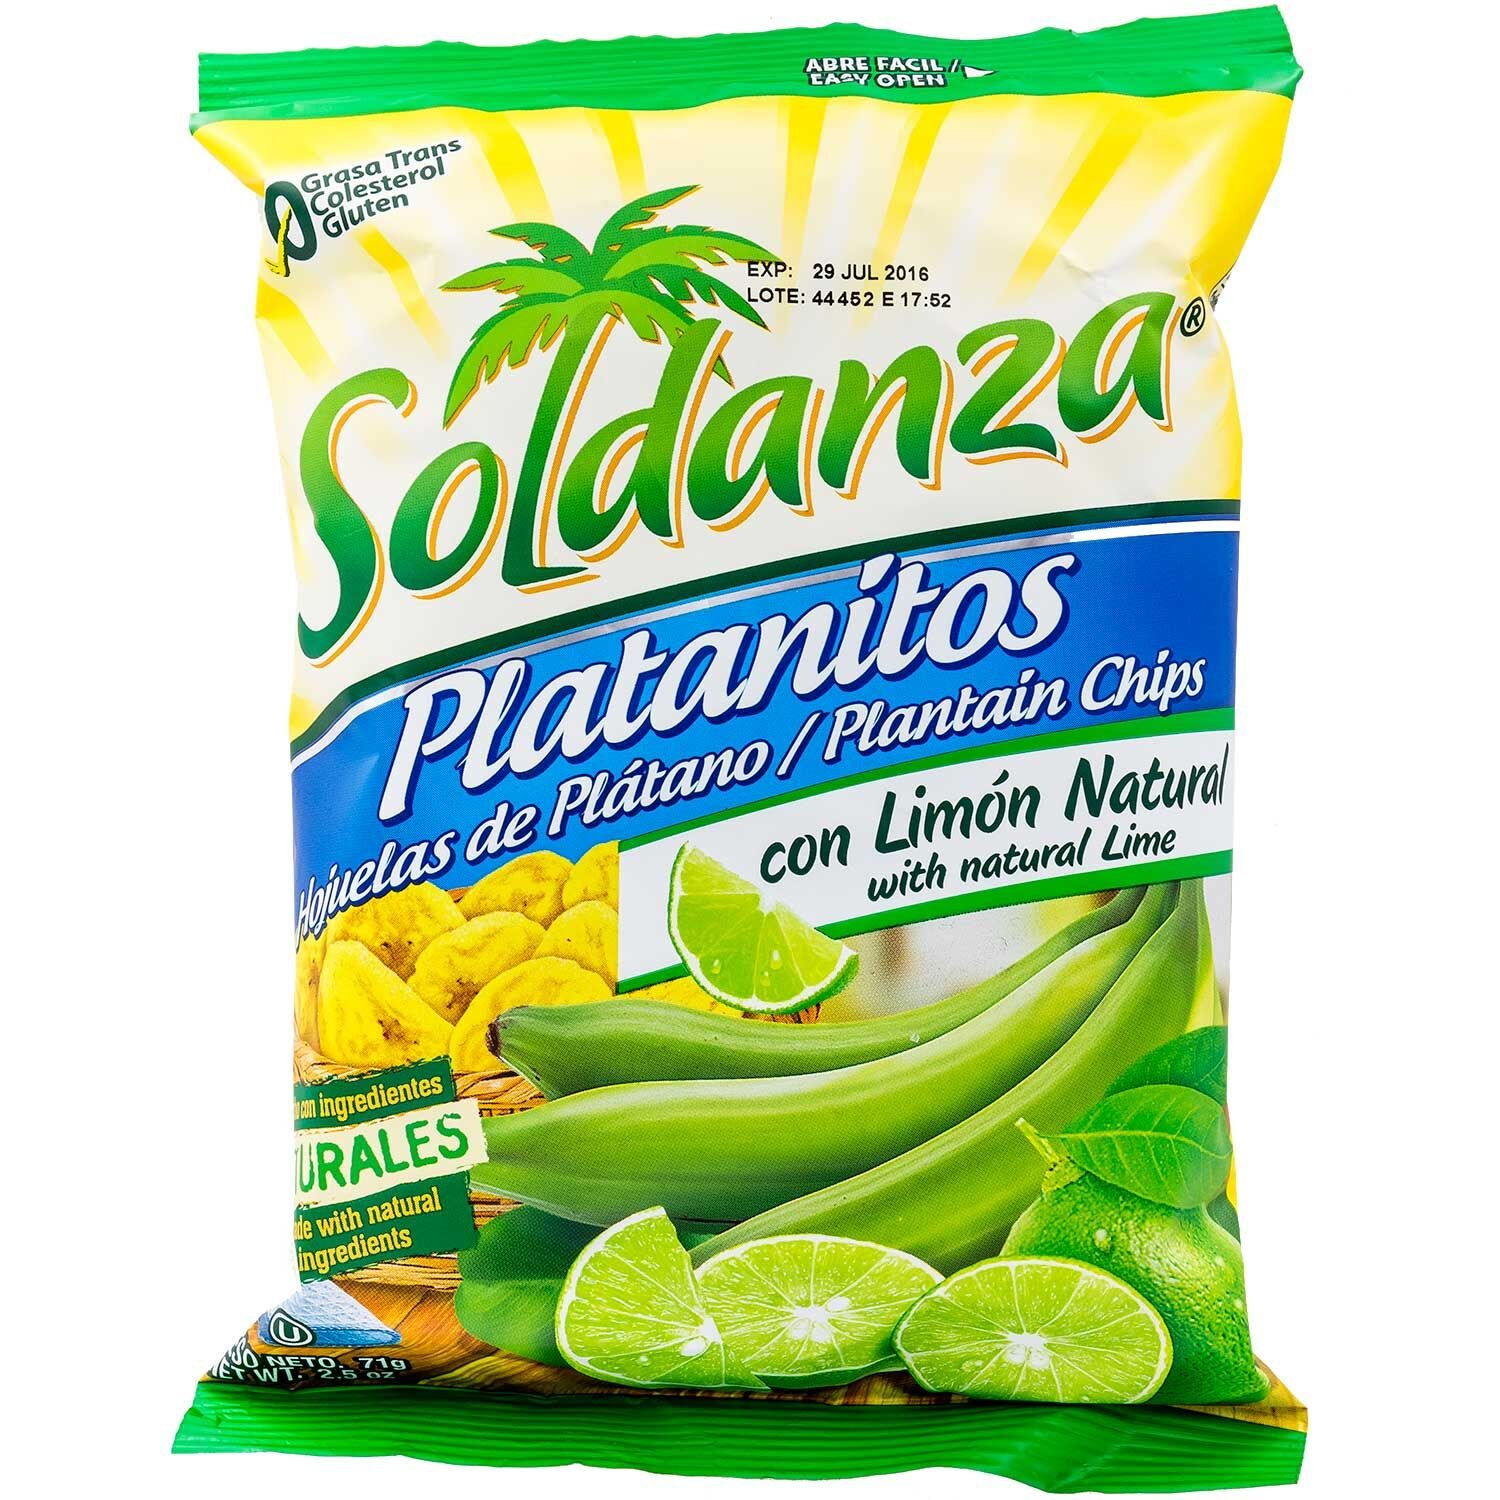 Soldanza Plantain Chips with Natural Lime 2.5 oz (Pack of 24)